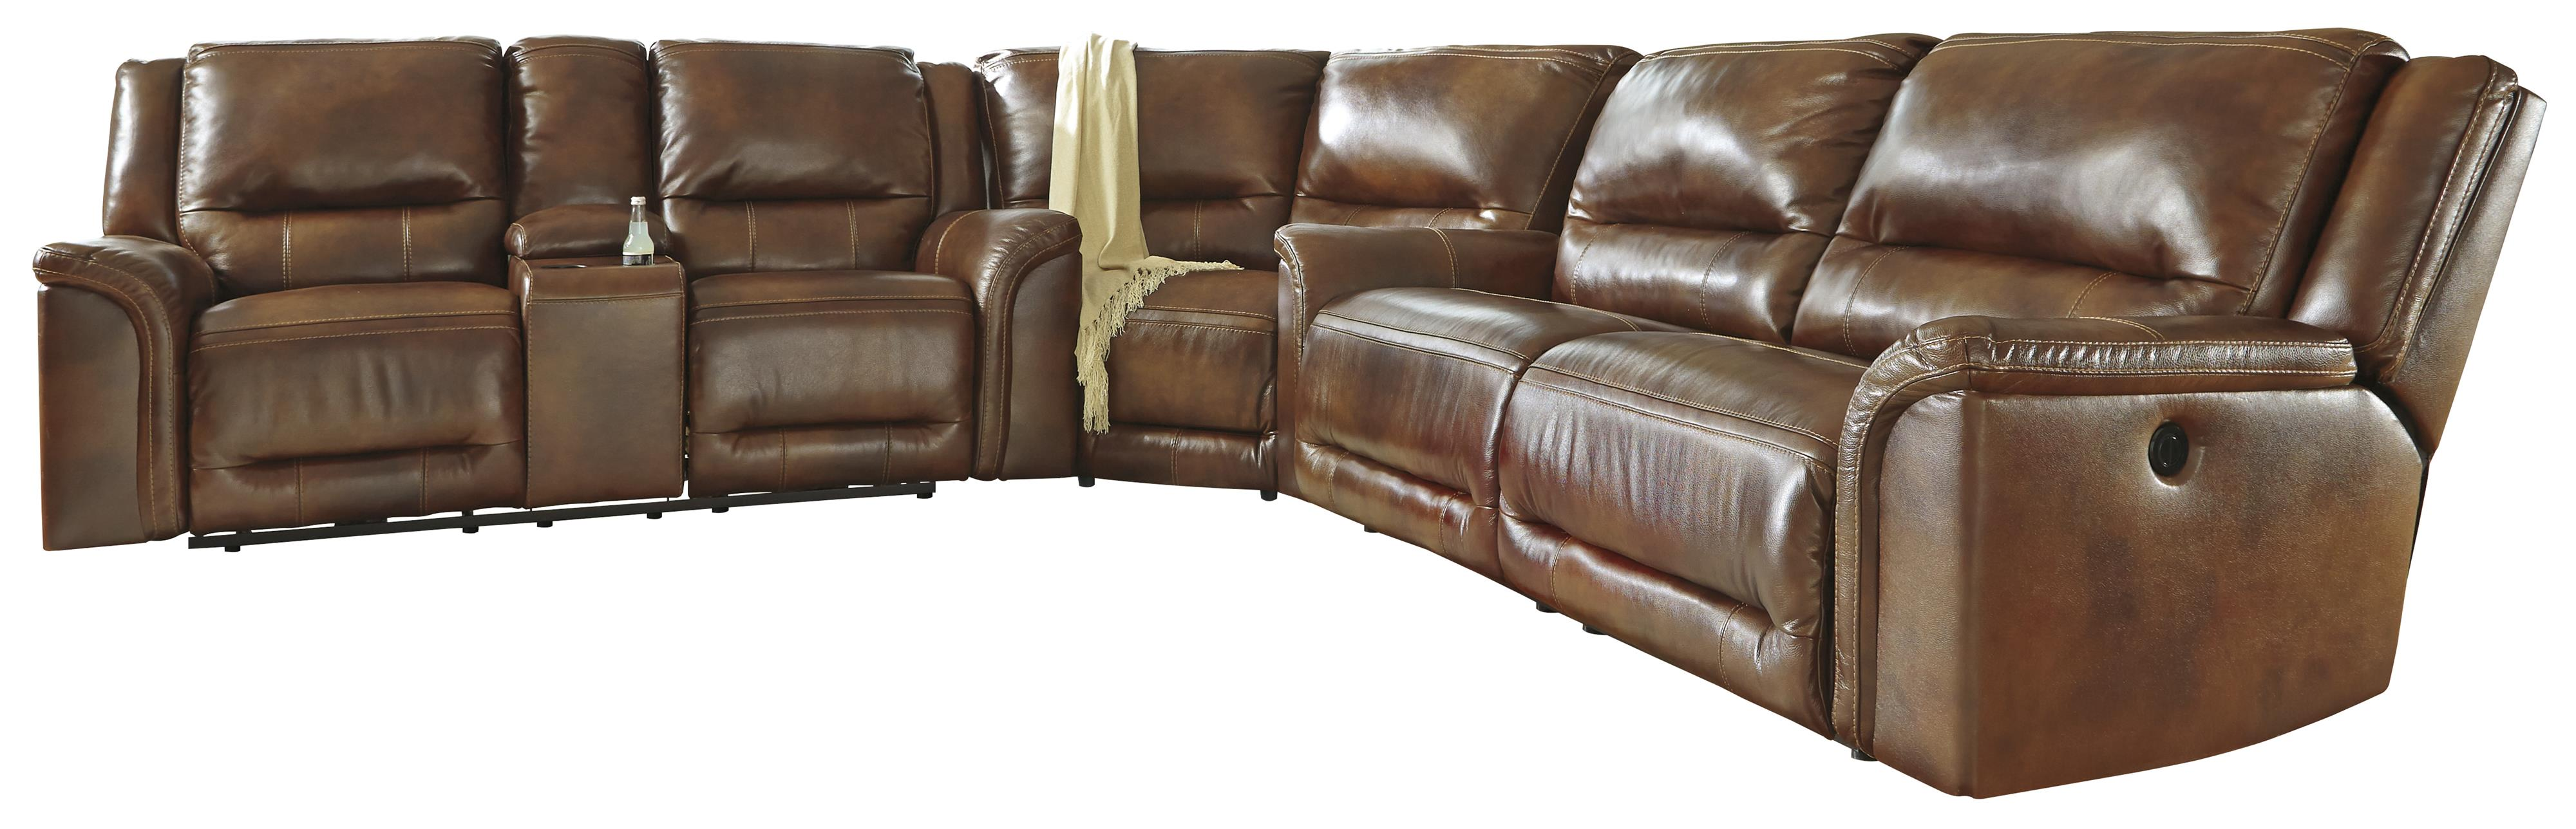 reclining match sectional ashley with design by leather wedge products sofa power contemporary furniture